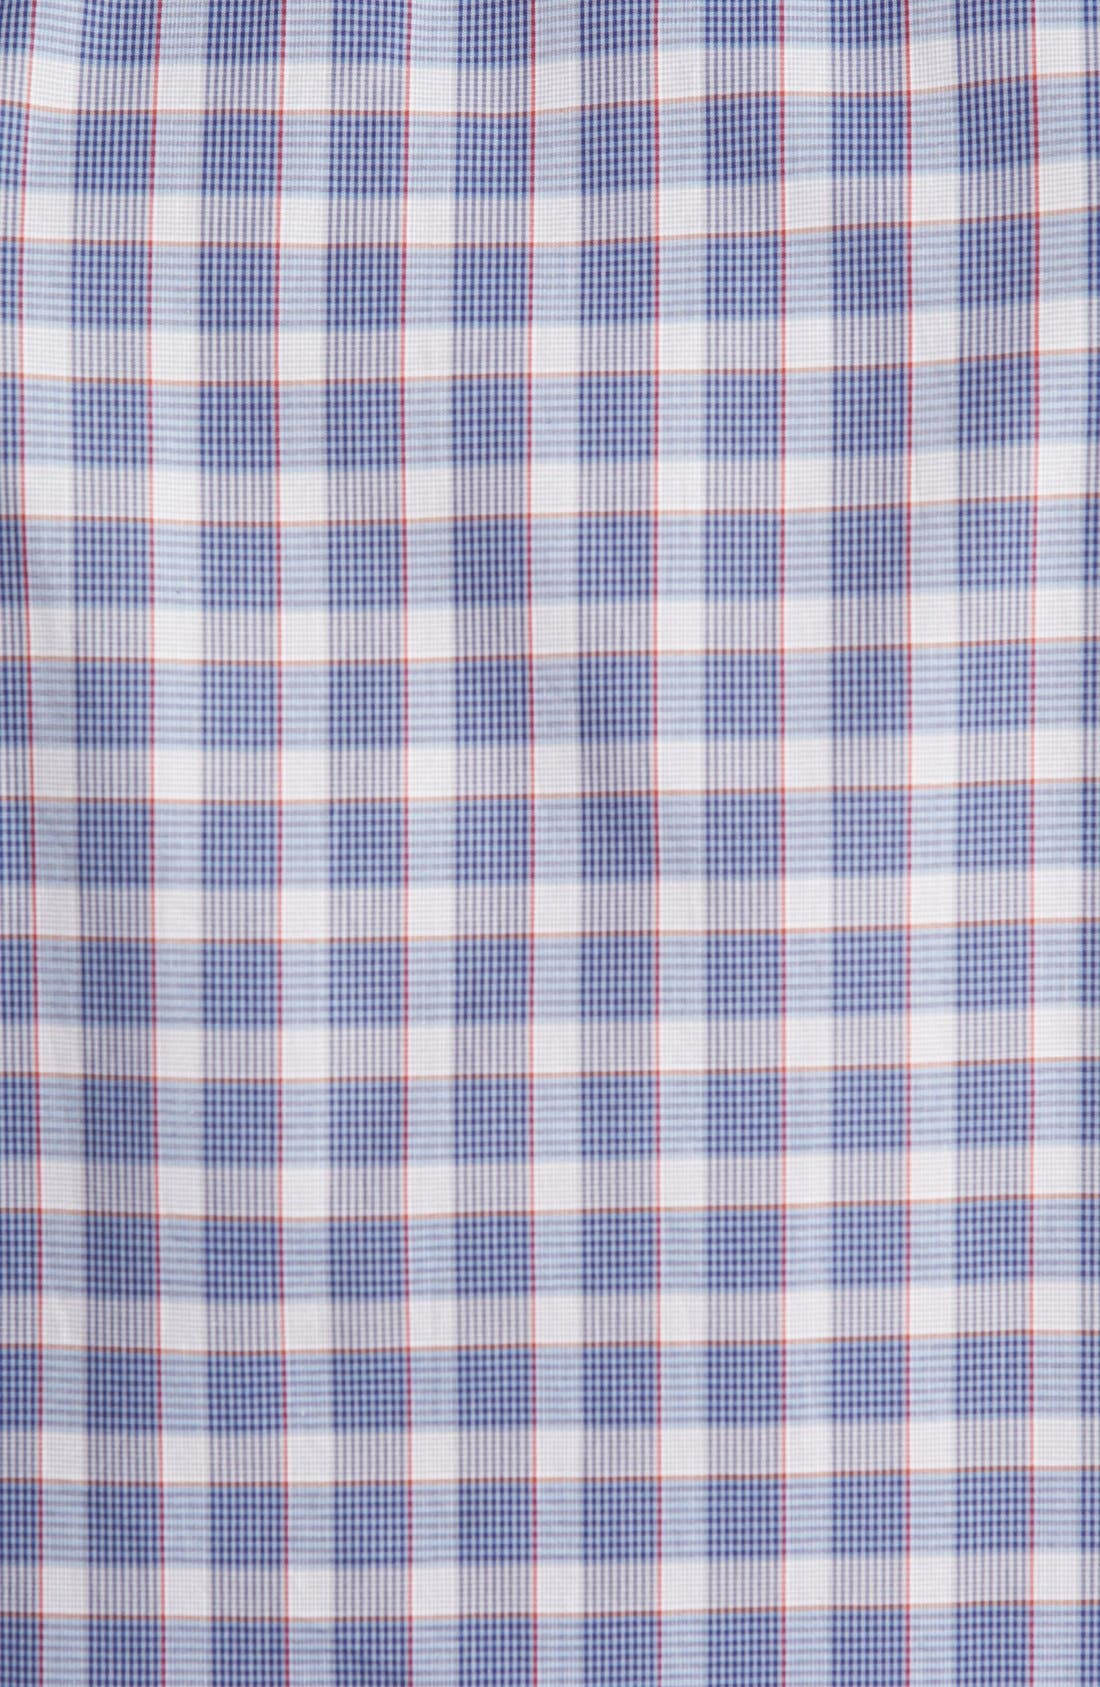 Alternate Image 3  - BOSS HUGO BOSS 'Ronny' Slim Fit Sport Shirt